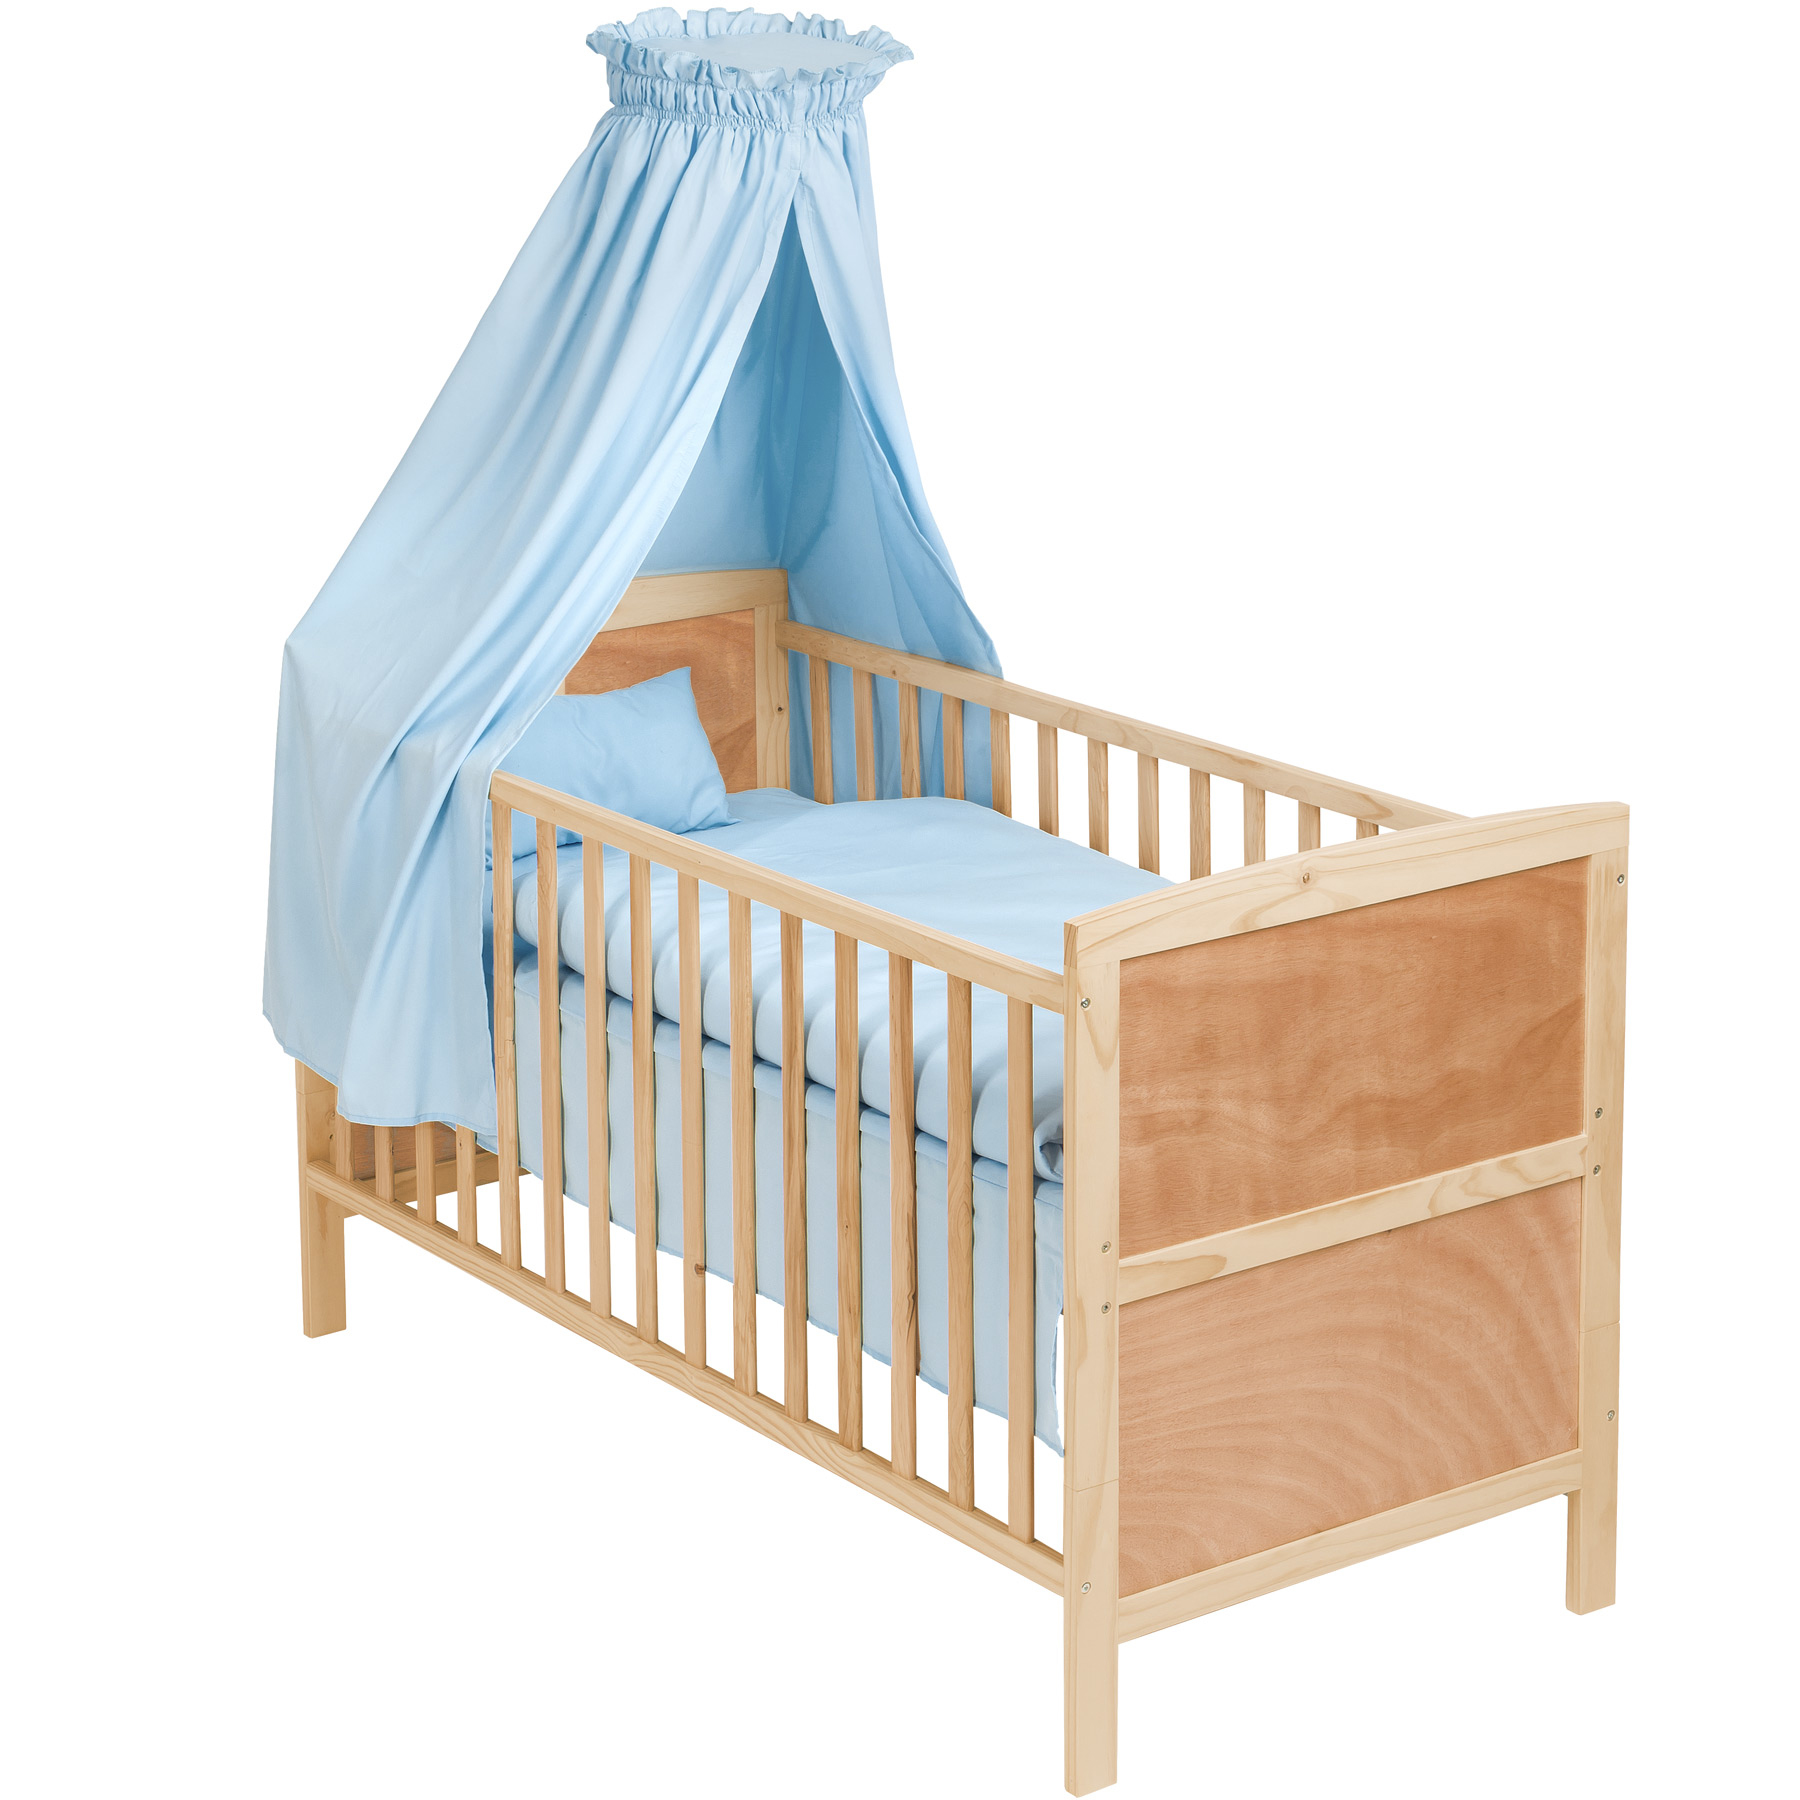 3 in 1 babybett mit himmel kinderbett h henverstellbar aus holz bettset blau. Black Bedroom Furniture Sets. Home Design Ideas